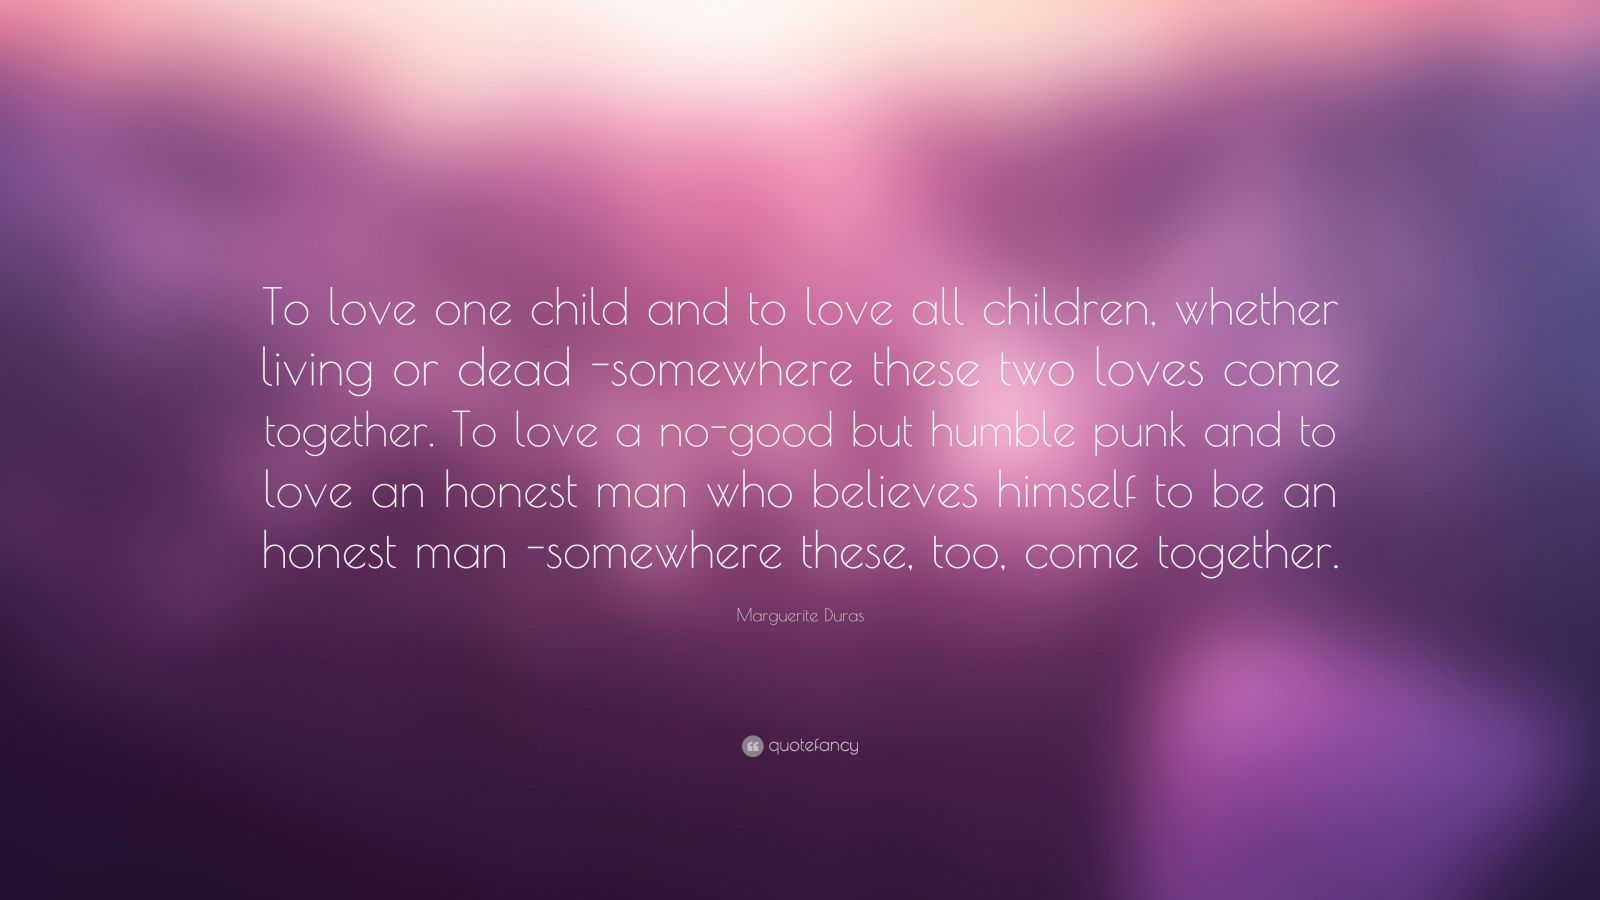 """Marguerite Duras Quote: """"To love one child and to love all children, whether living or dead -somewhere these two loves come together. To love a no-good but humble punk and to love an honest man who believes himself to be an honest man -somewhere these, too, come together."""""""